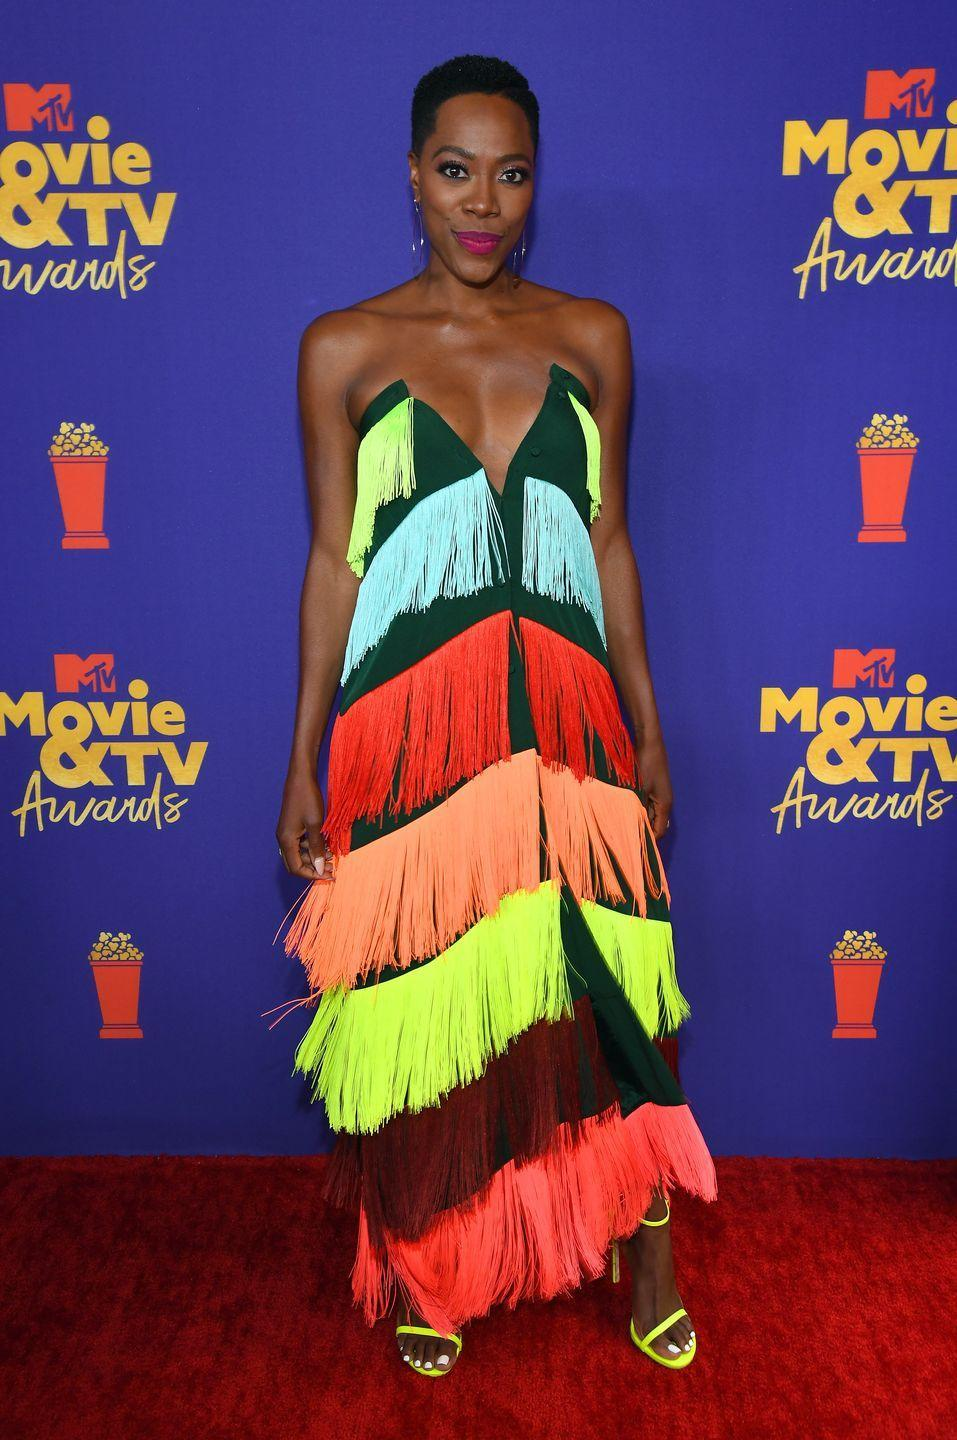 <p>Yvonne Orji brought a little drama to the red carpet in a fun fringed gown by Mimi Plange.</p>